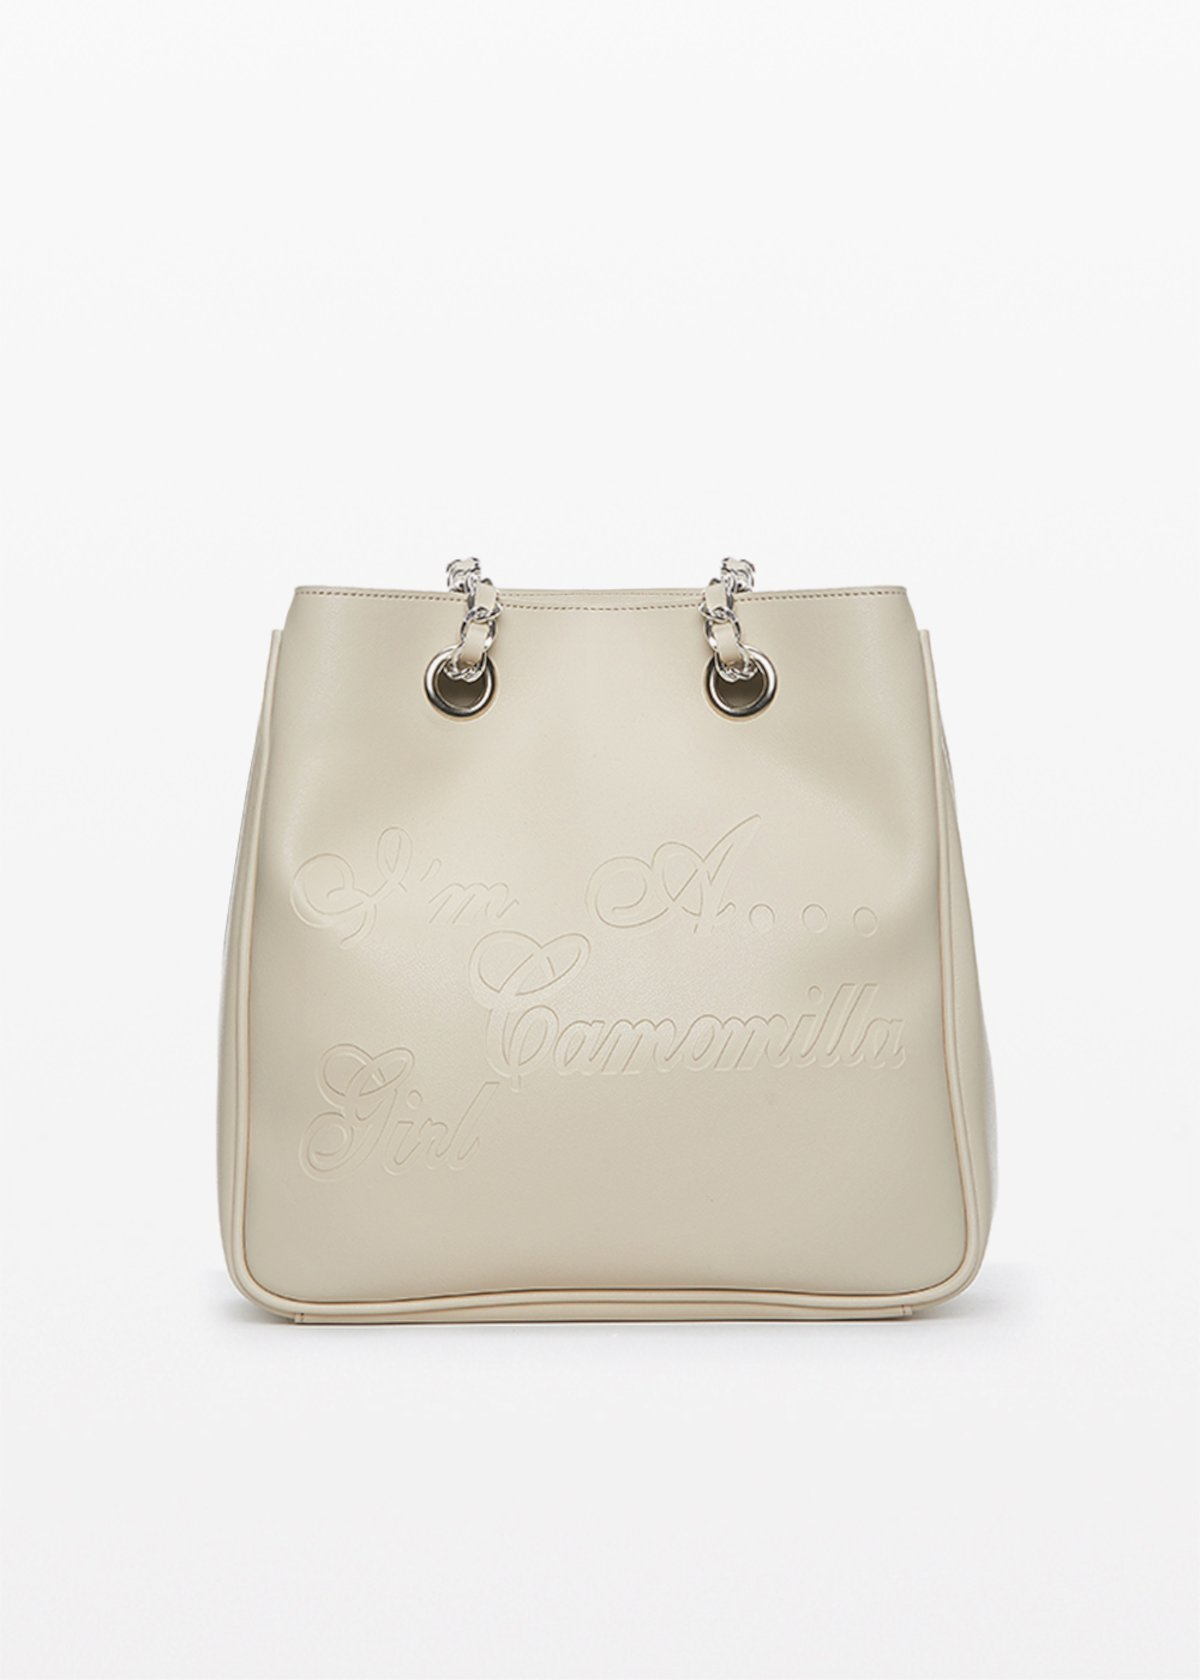 Micamunli faux leather shopping bag with logo